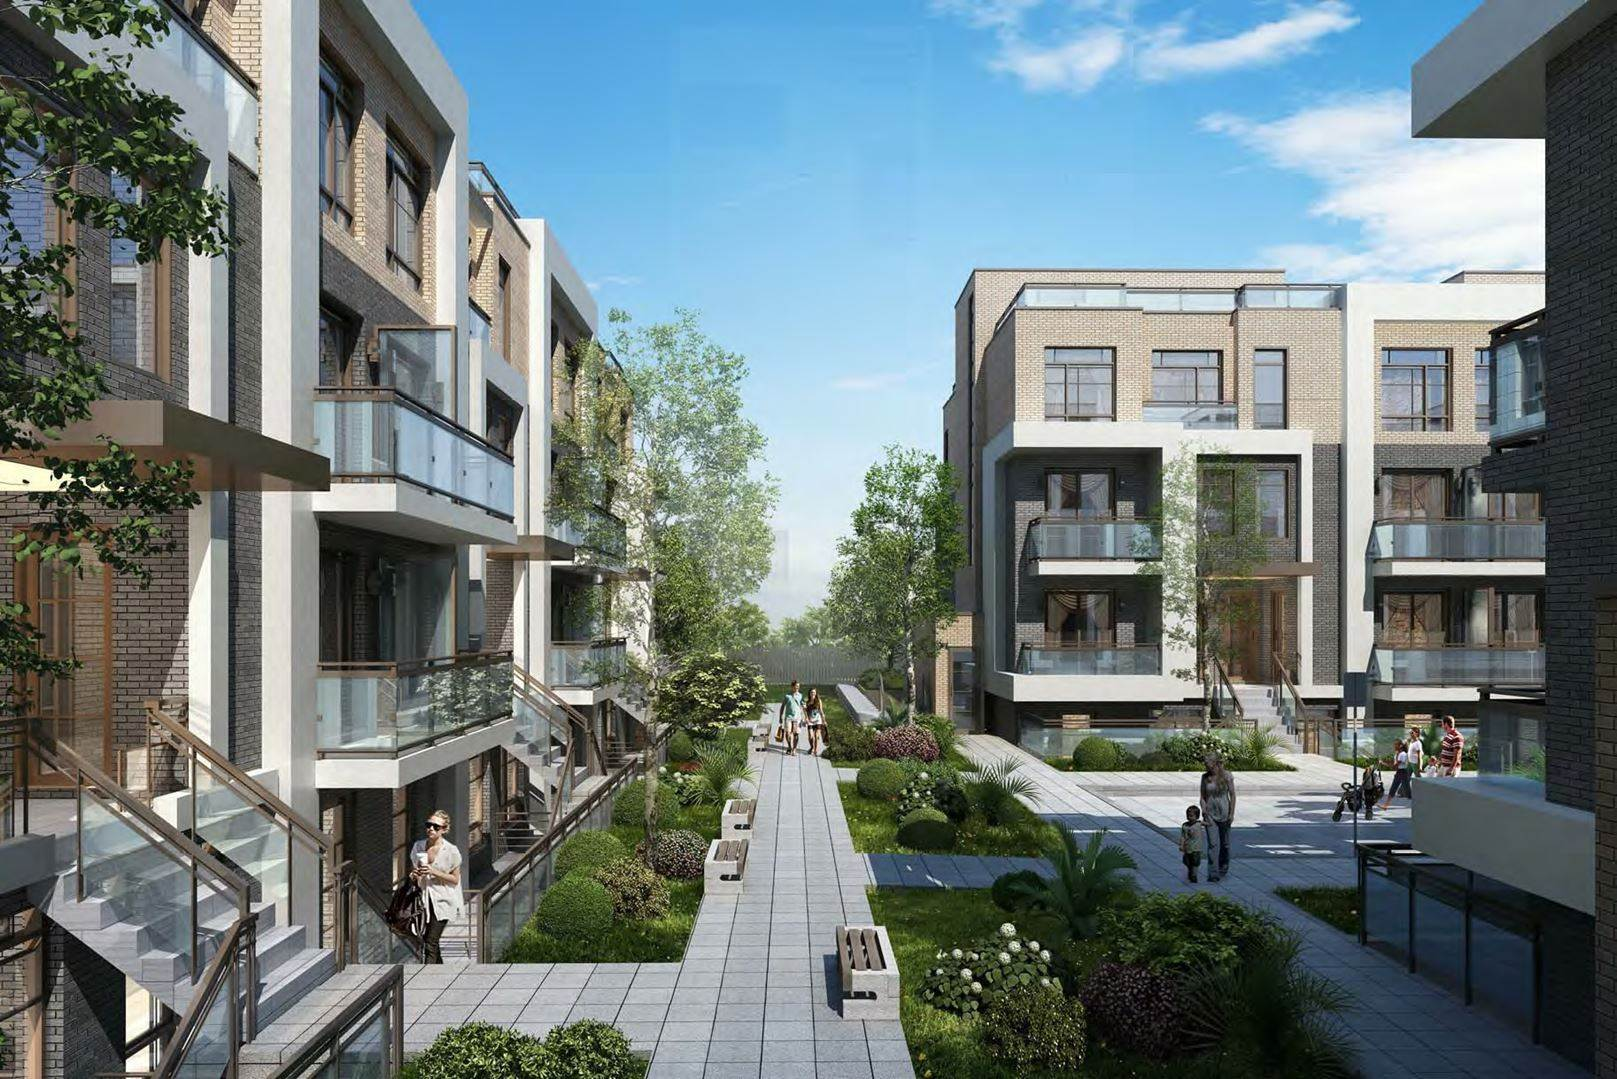 2021_01_06_01_42_21_sheppardgarden_95development_rendering_courtyard